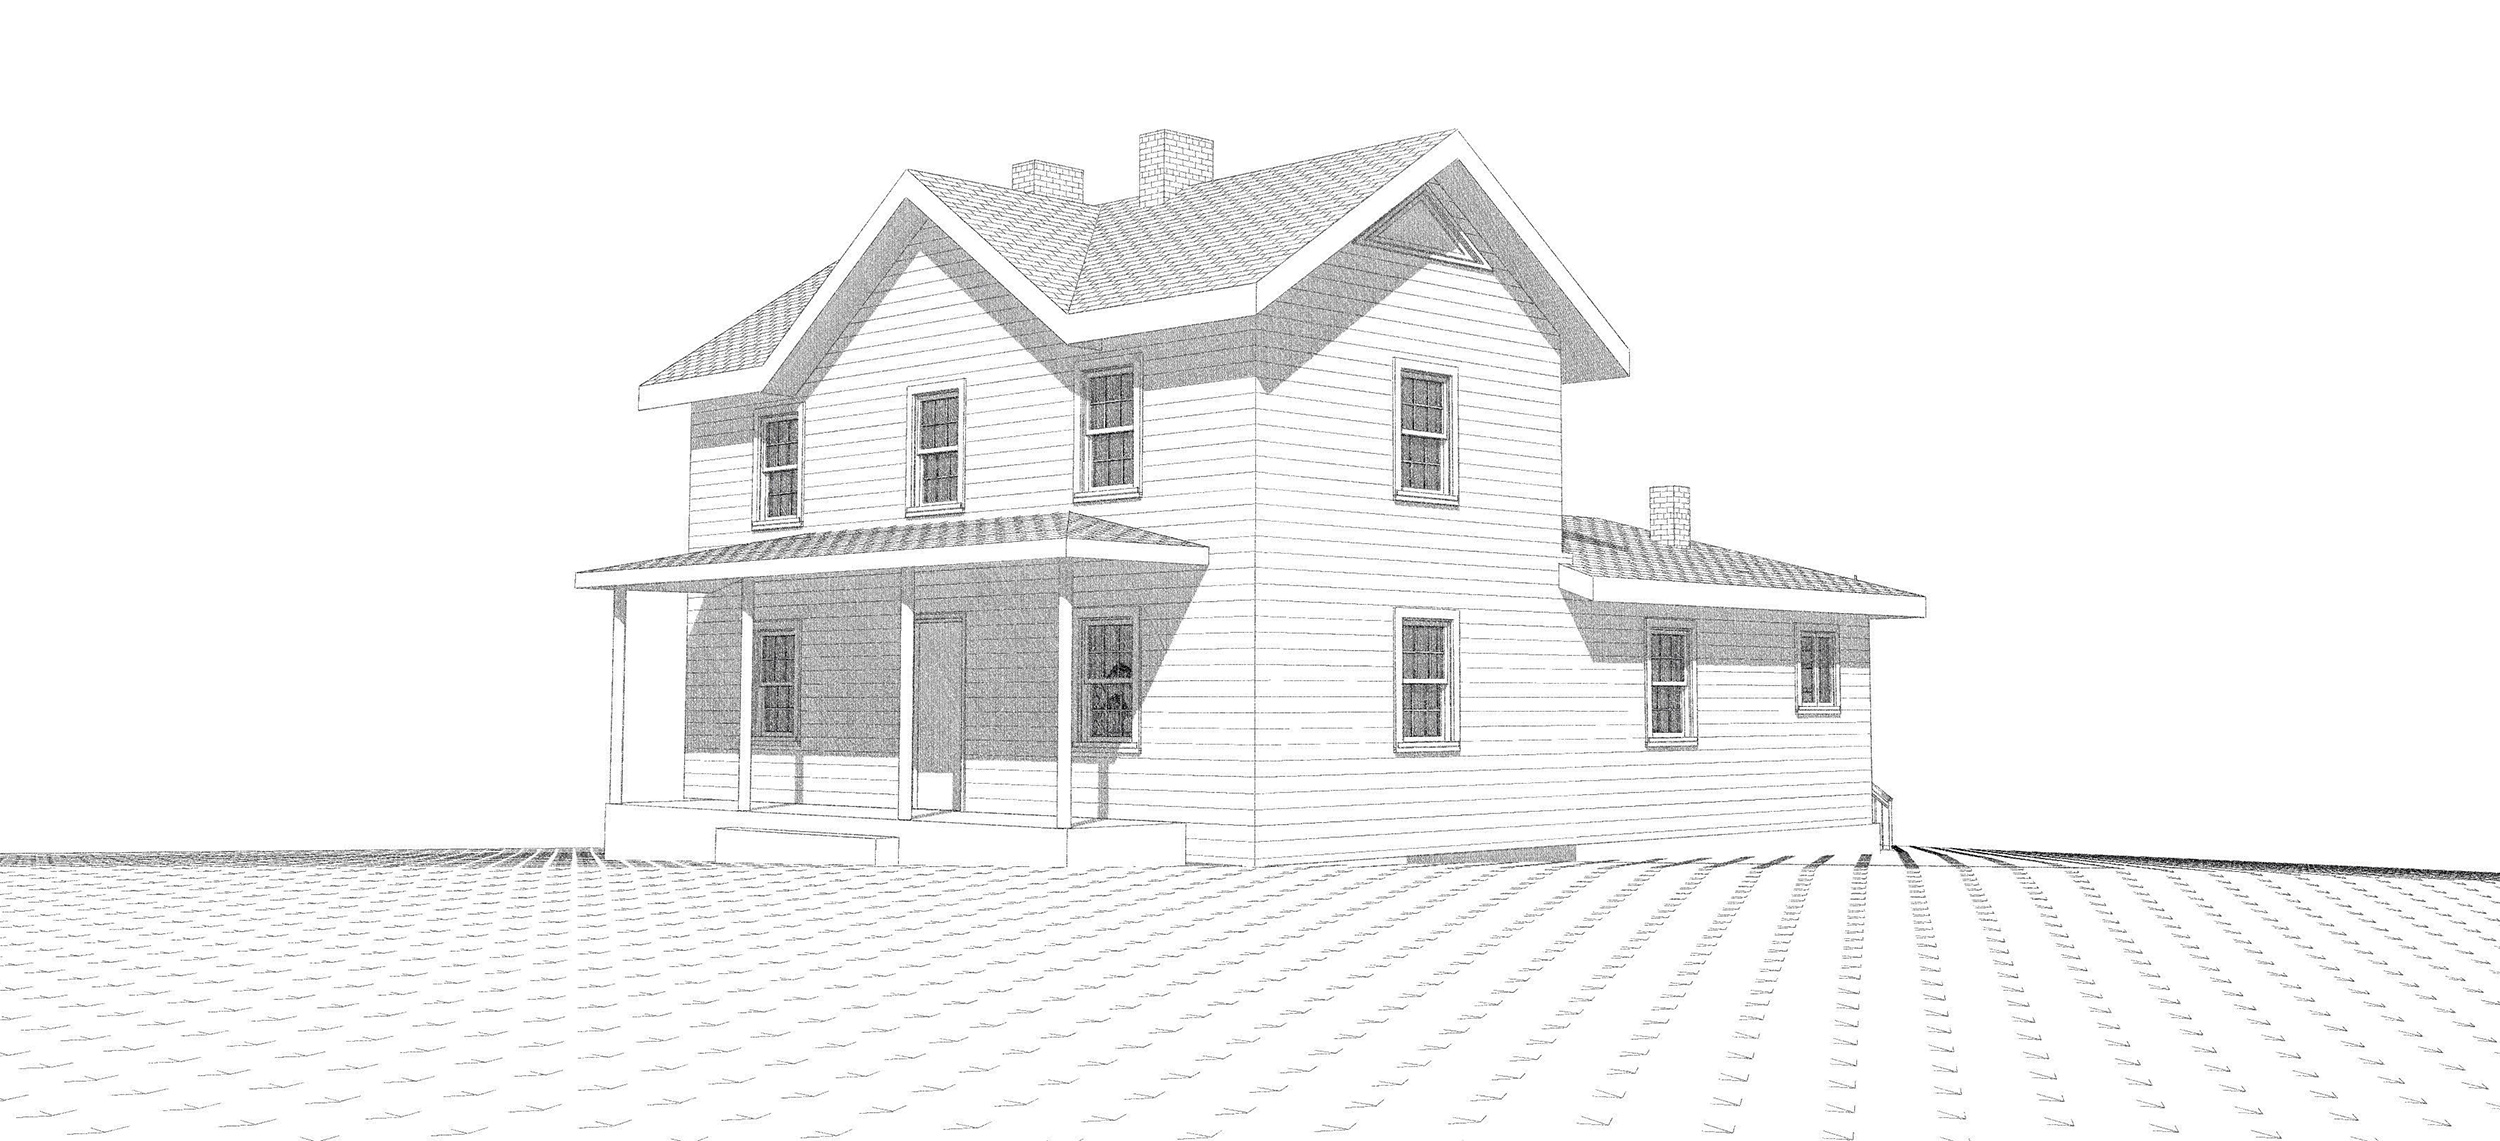 SKETCH OF HOUSE PRIOR TO RENOVATION